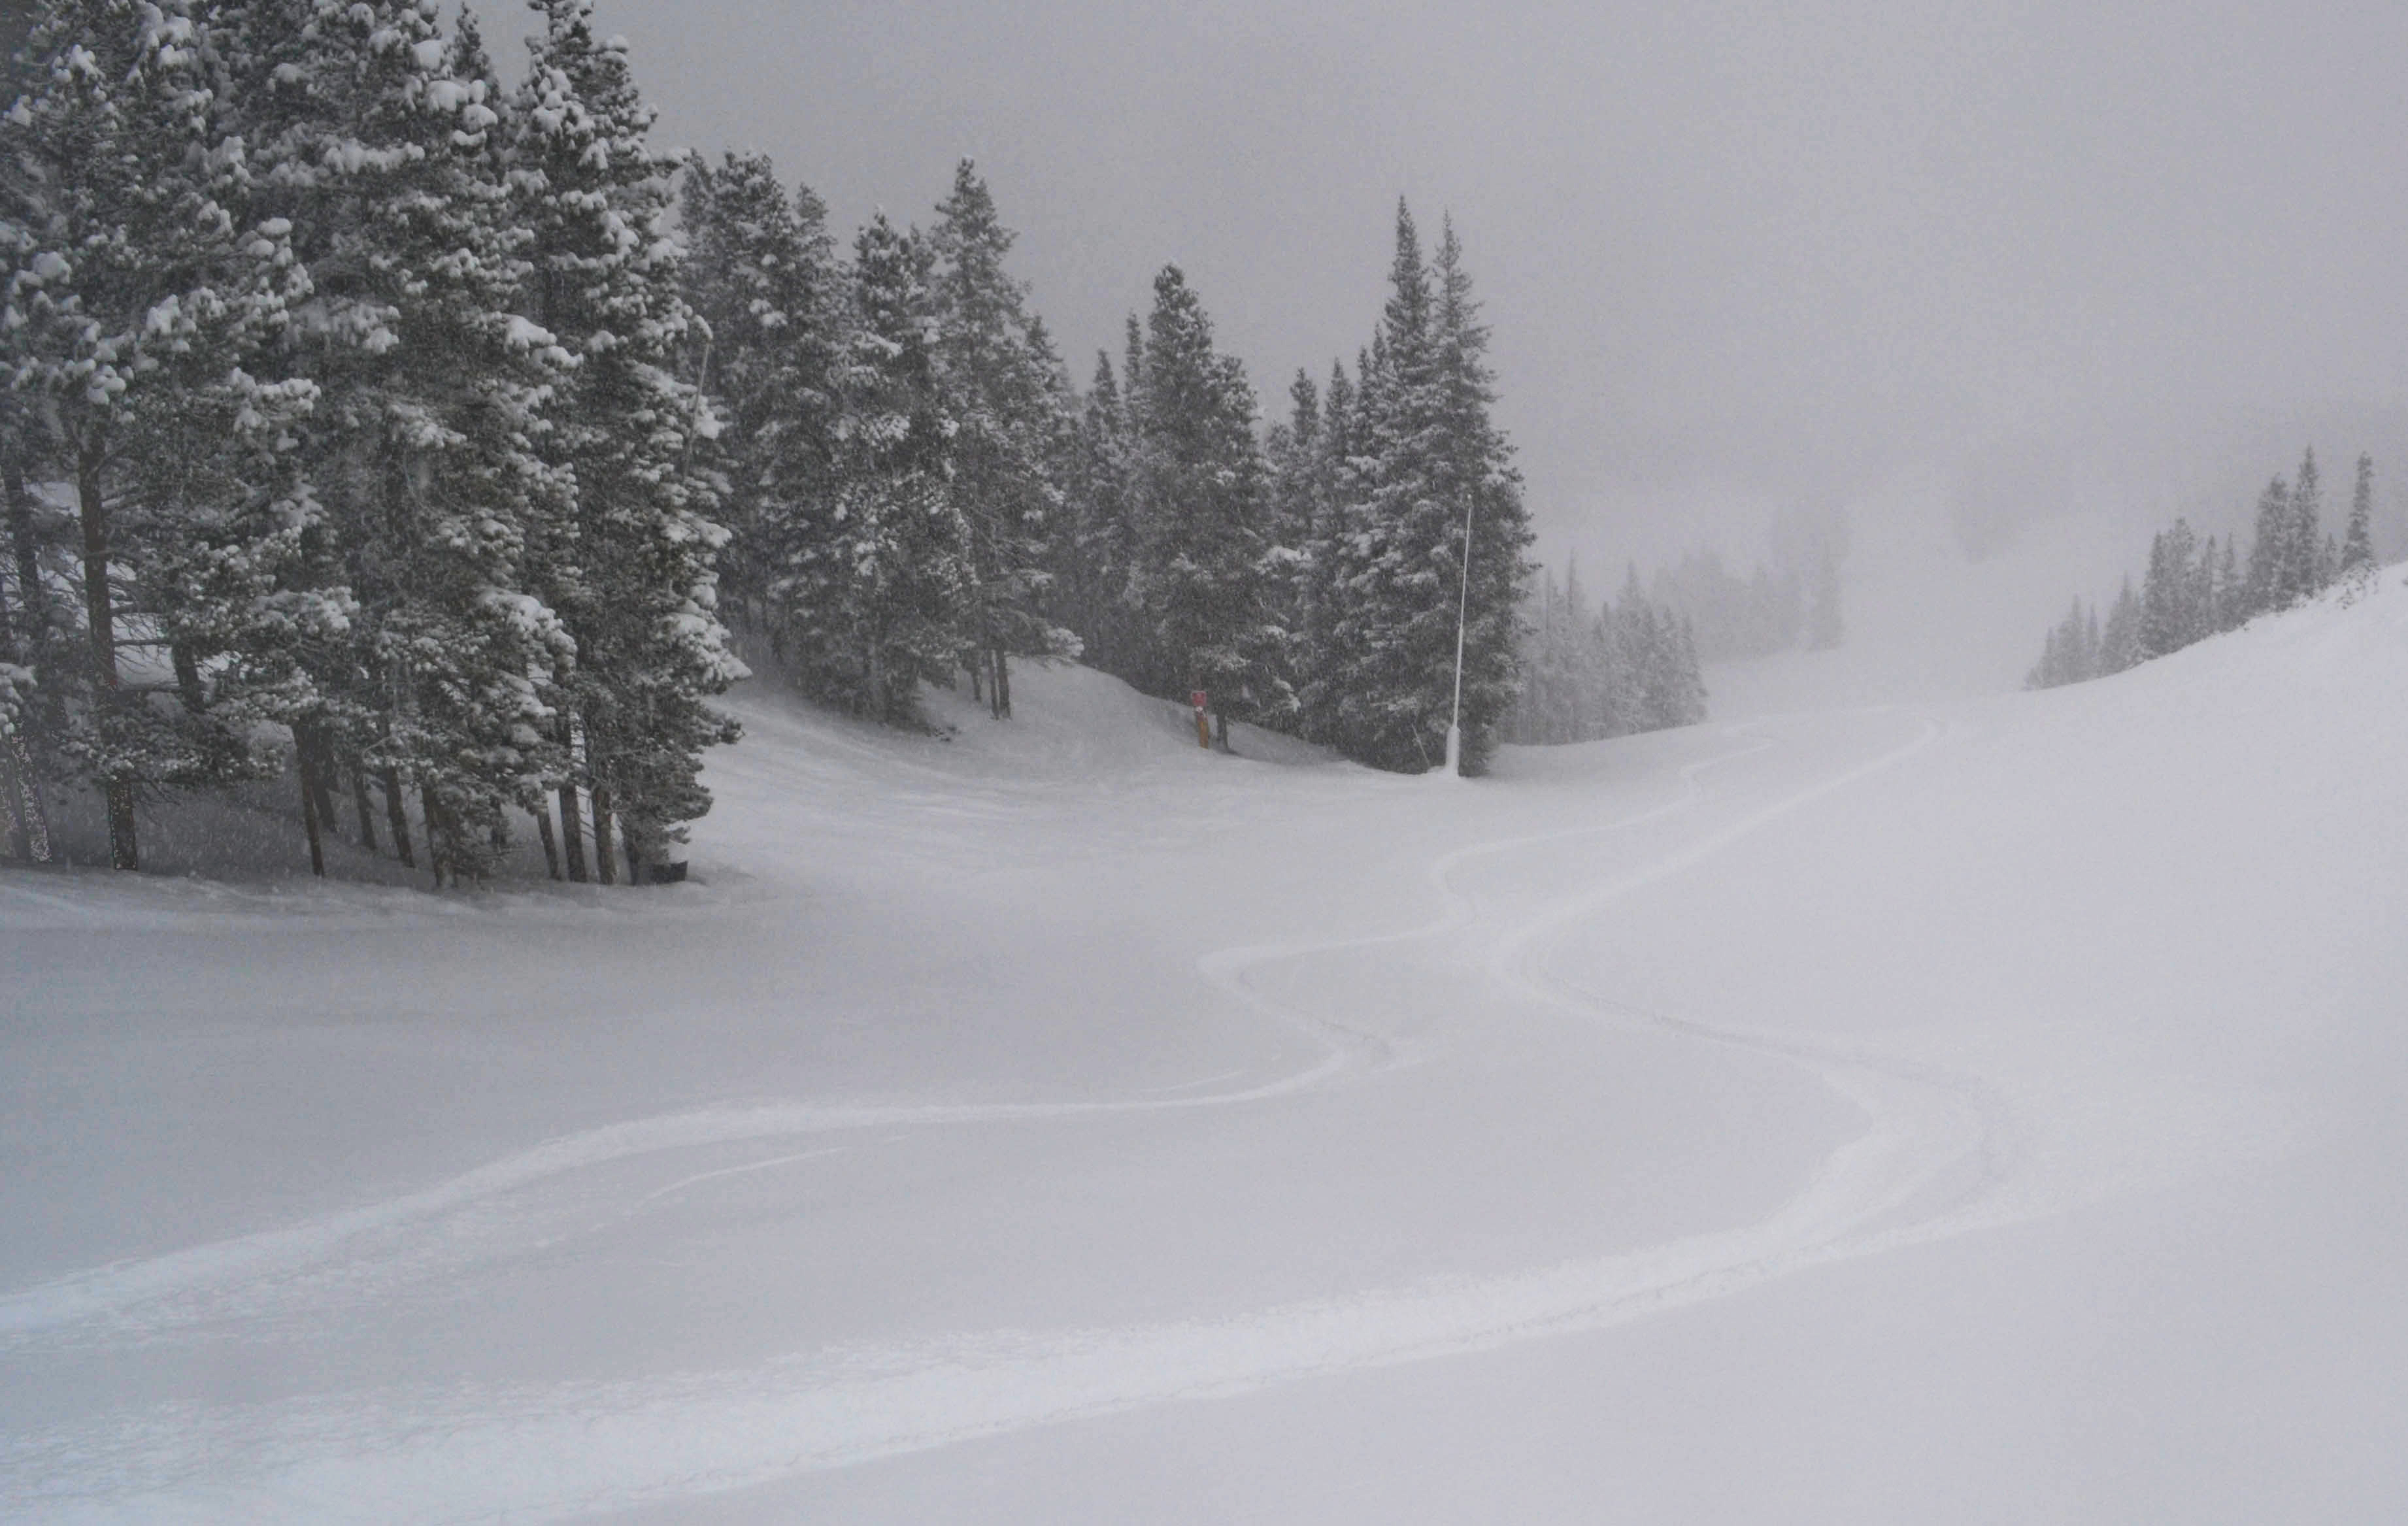 First Turns on Spruce